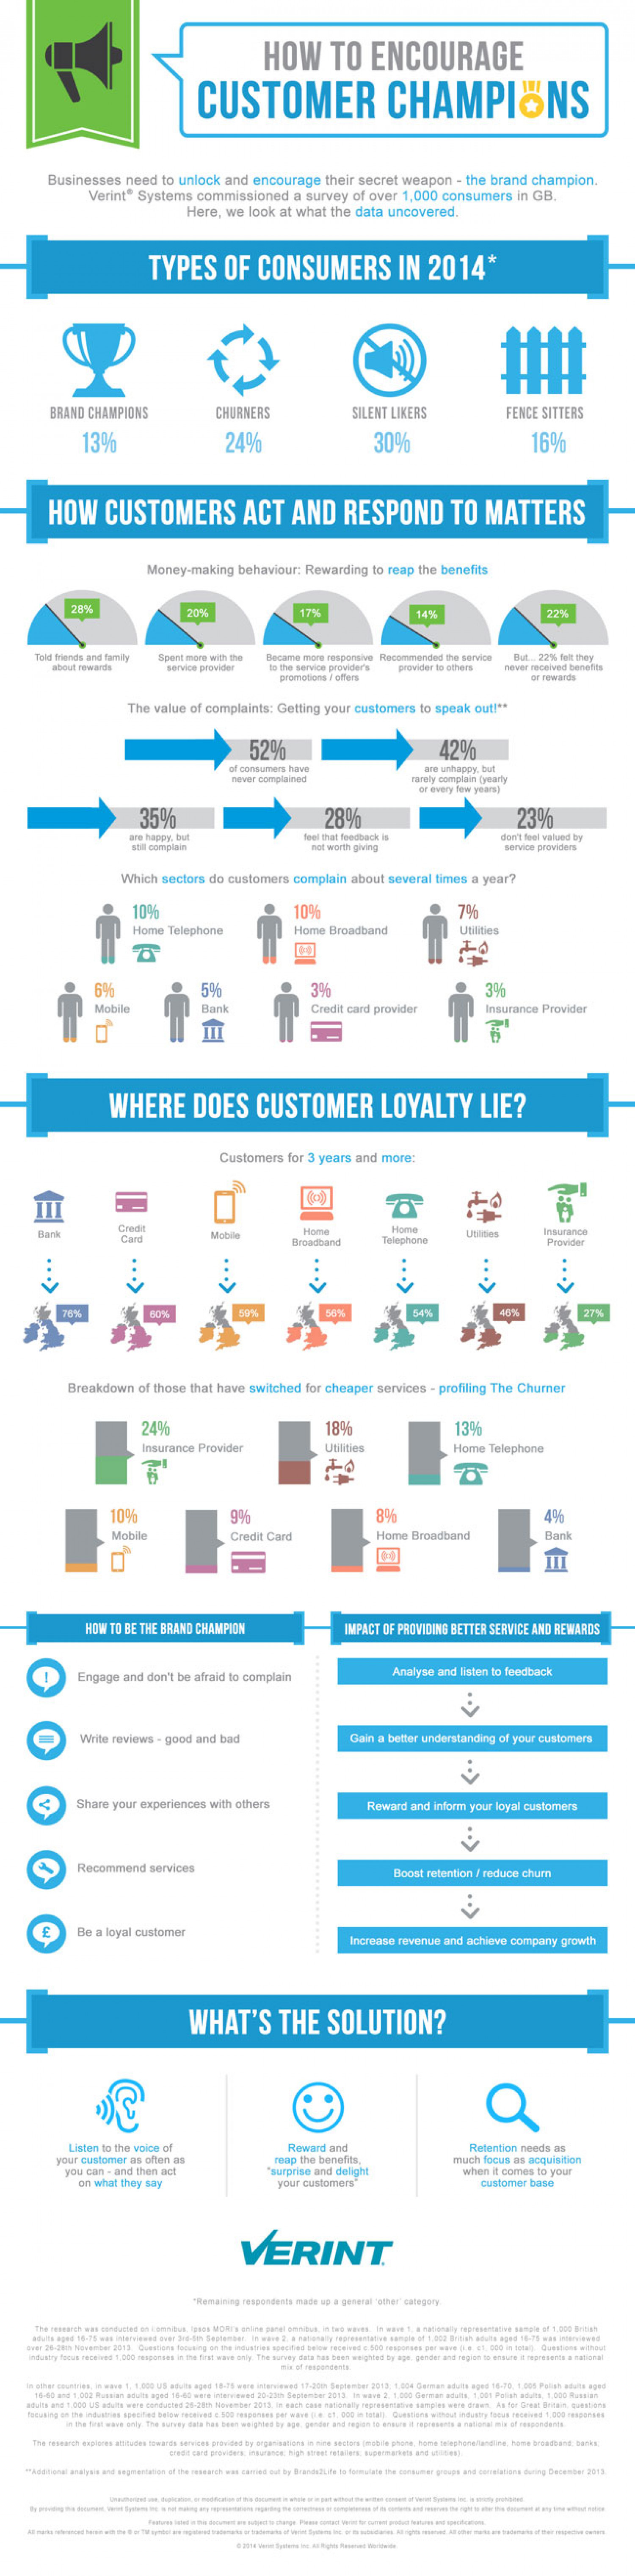 How to Encourage Customer Champions Infographic